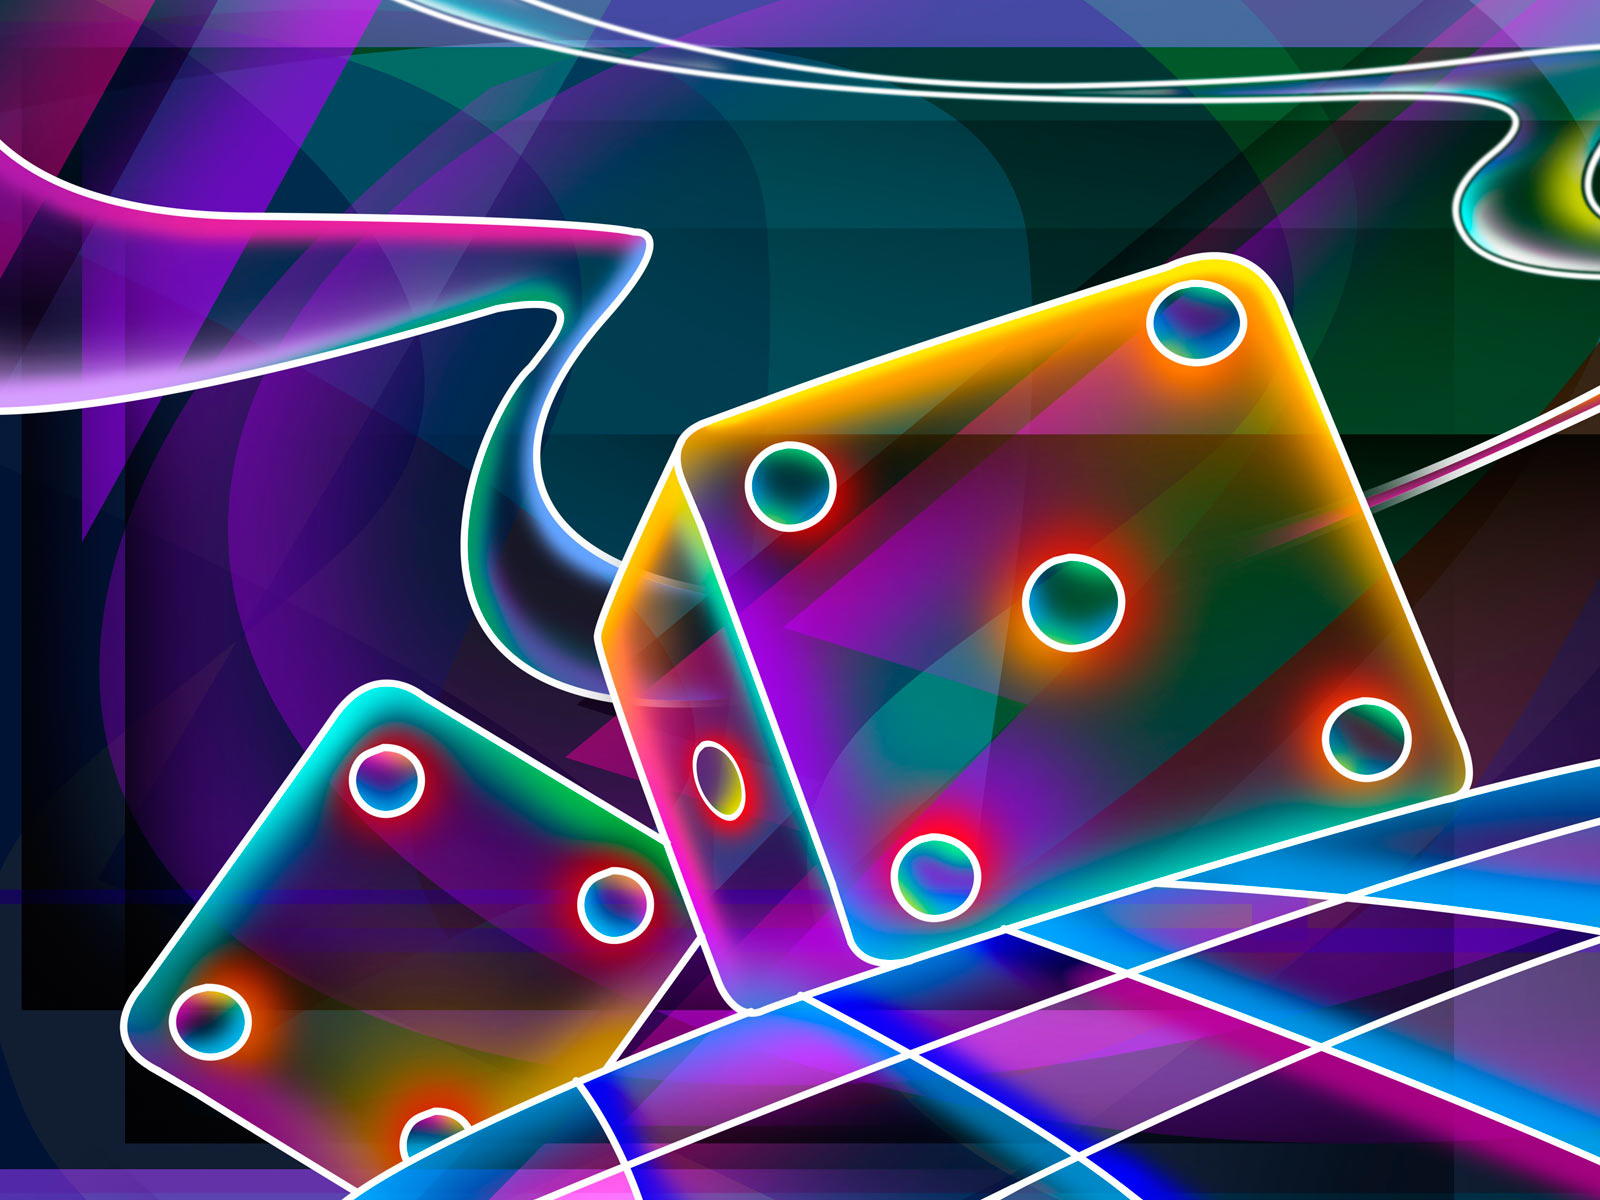 3d abstract 3d wallpapers hd 3d abstract 3d wallpapers hd 1600x1200